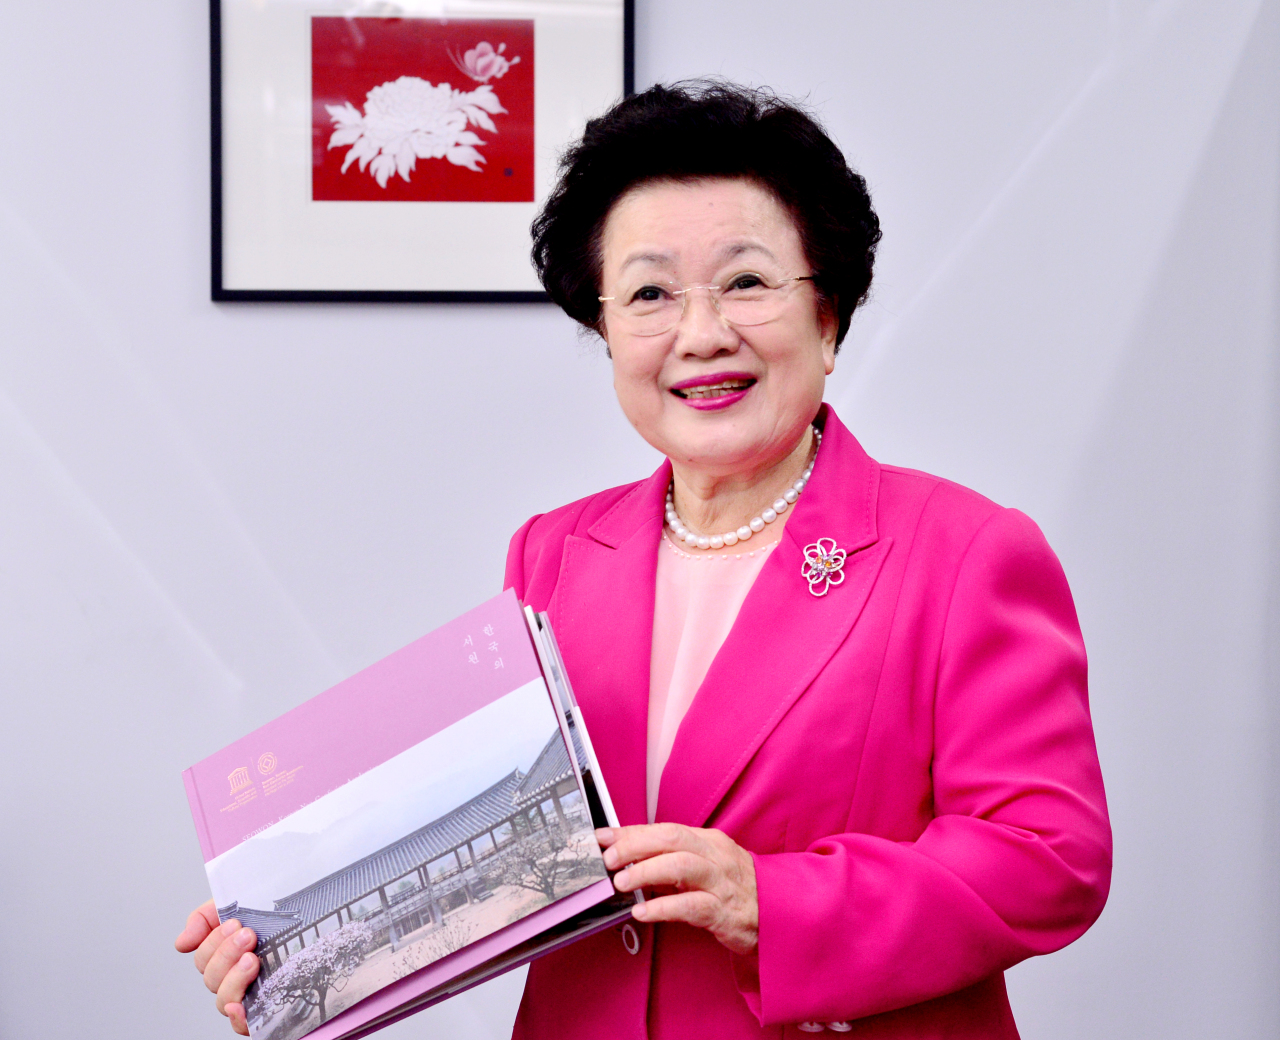 Lee Bae-yong, chairperson of the Conservation and Management Foundation of Seowon, poses while holding a book about Korean neo-Confucian academies, called seowon. (Park Hyun-koo/ The Korea Herald)